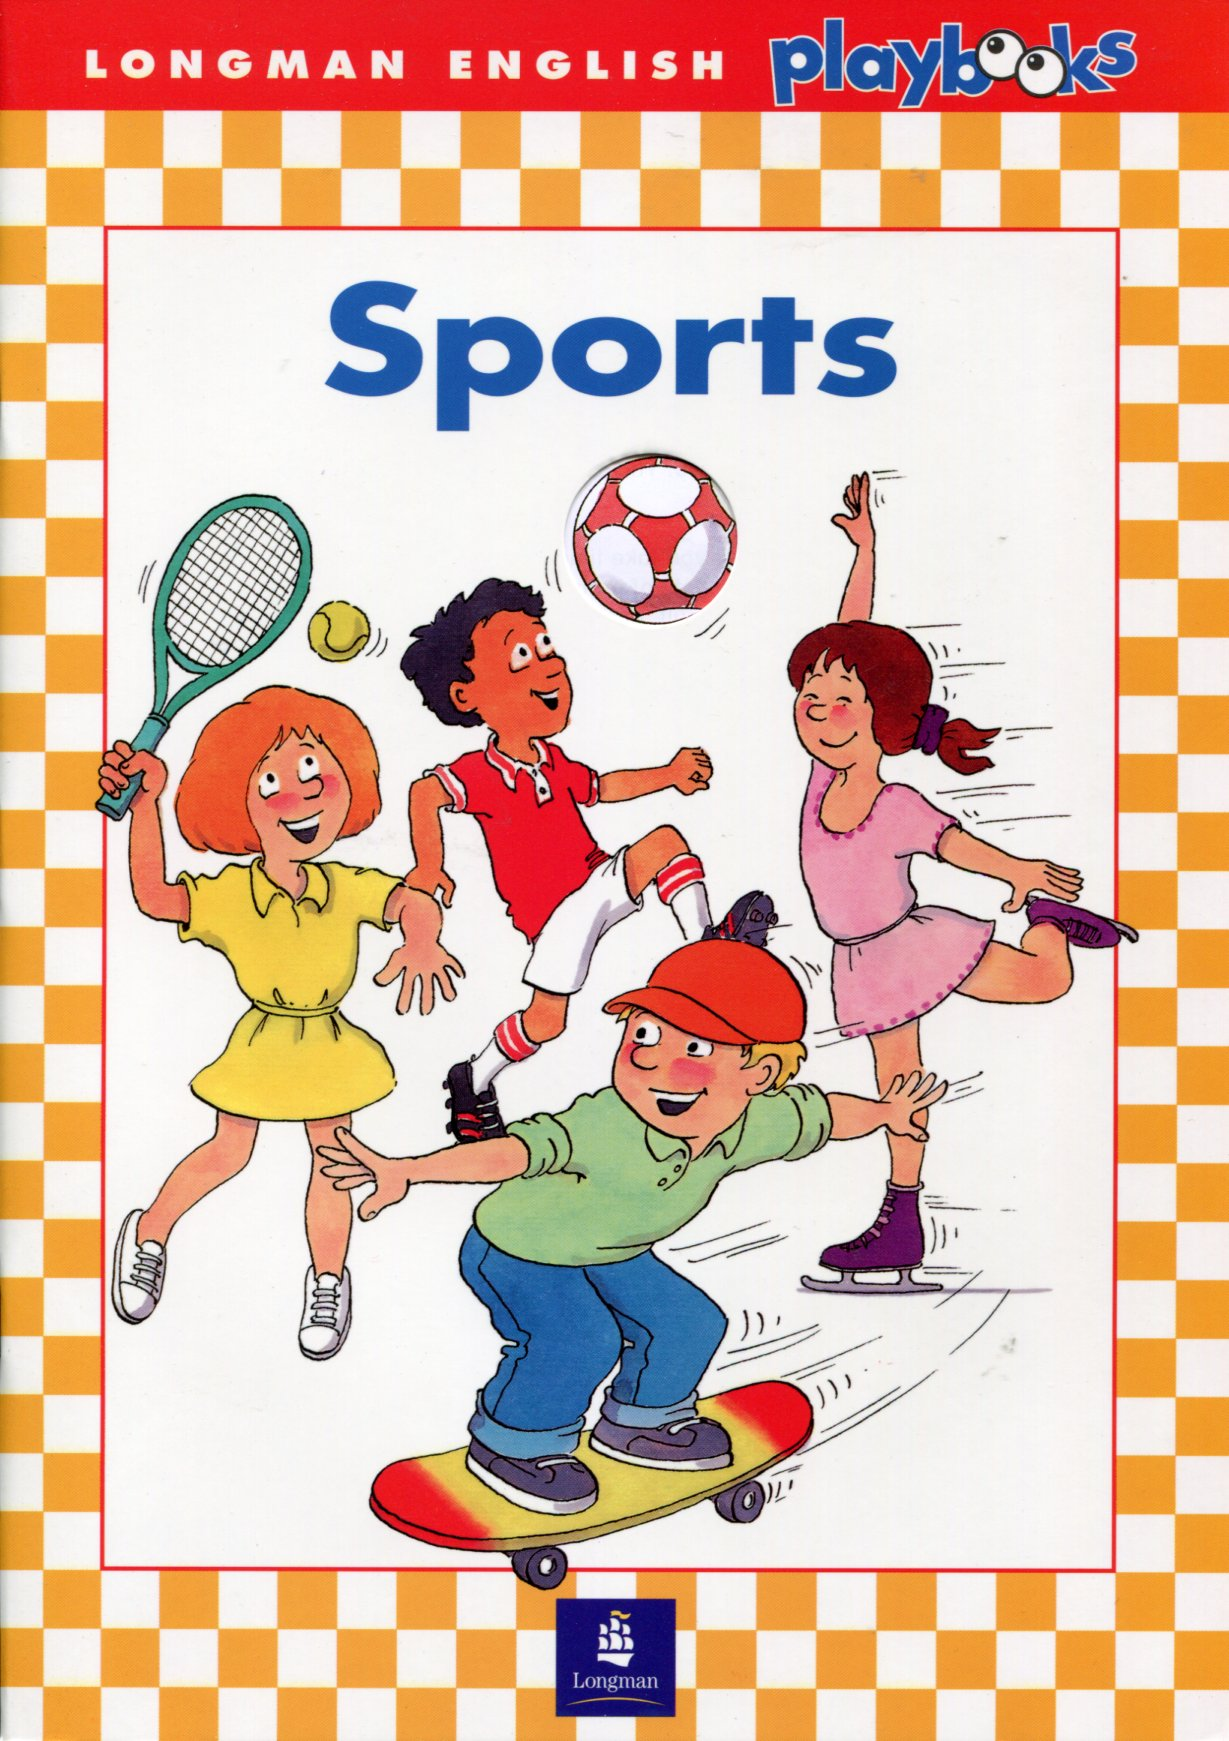 Longman English Playbooks: Sports